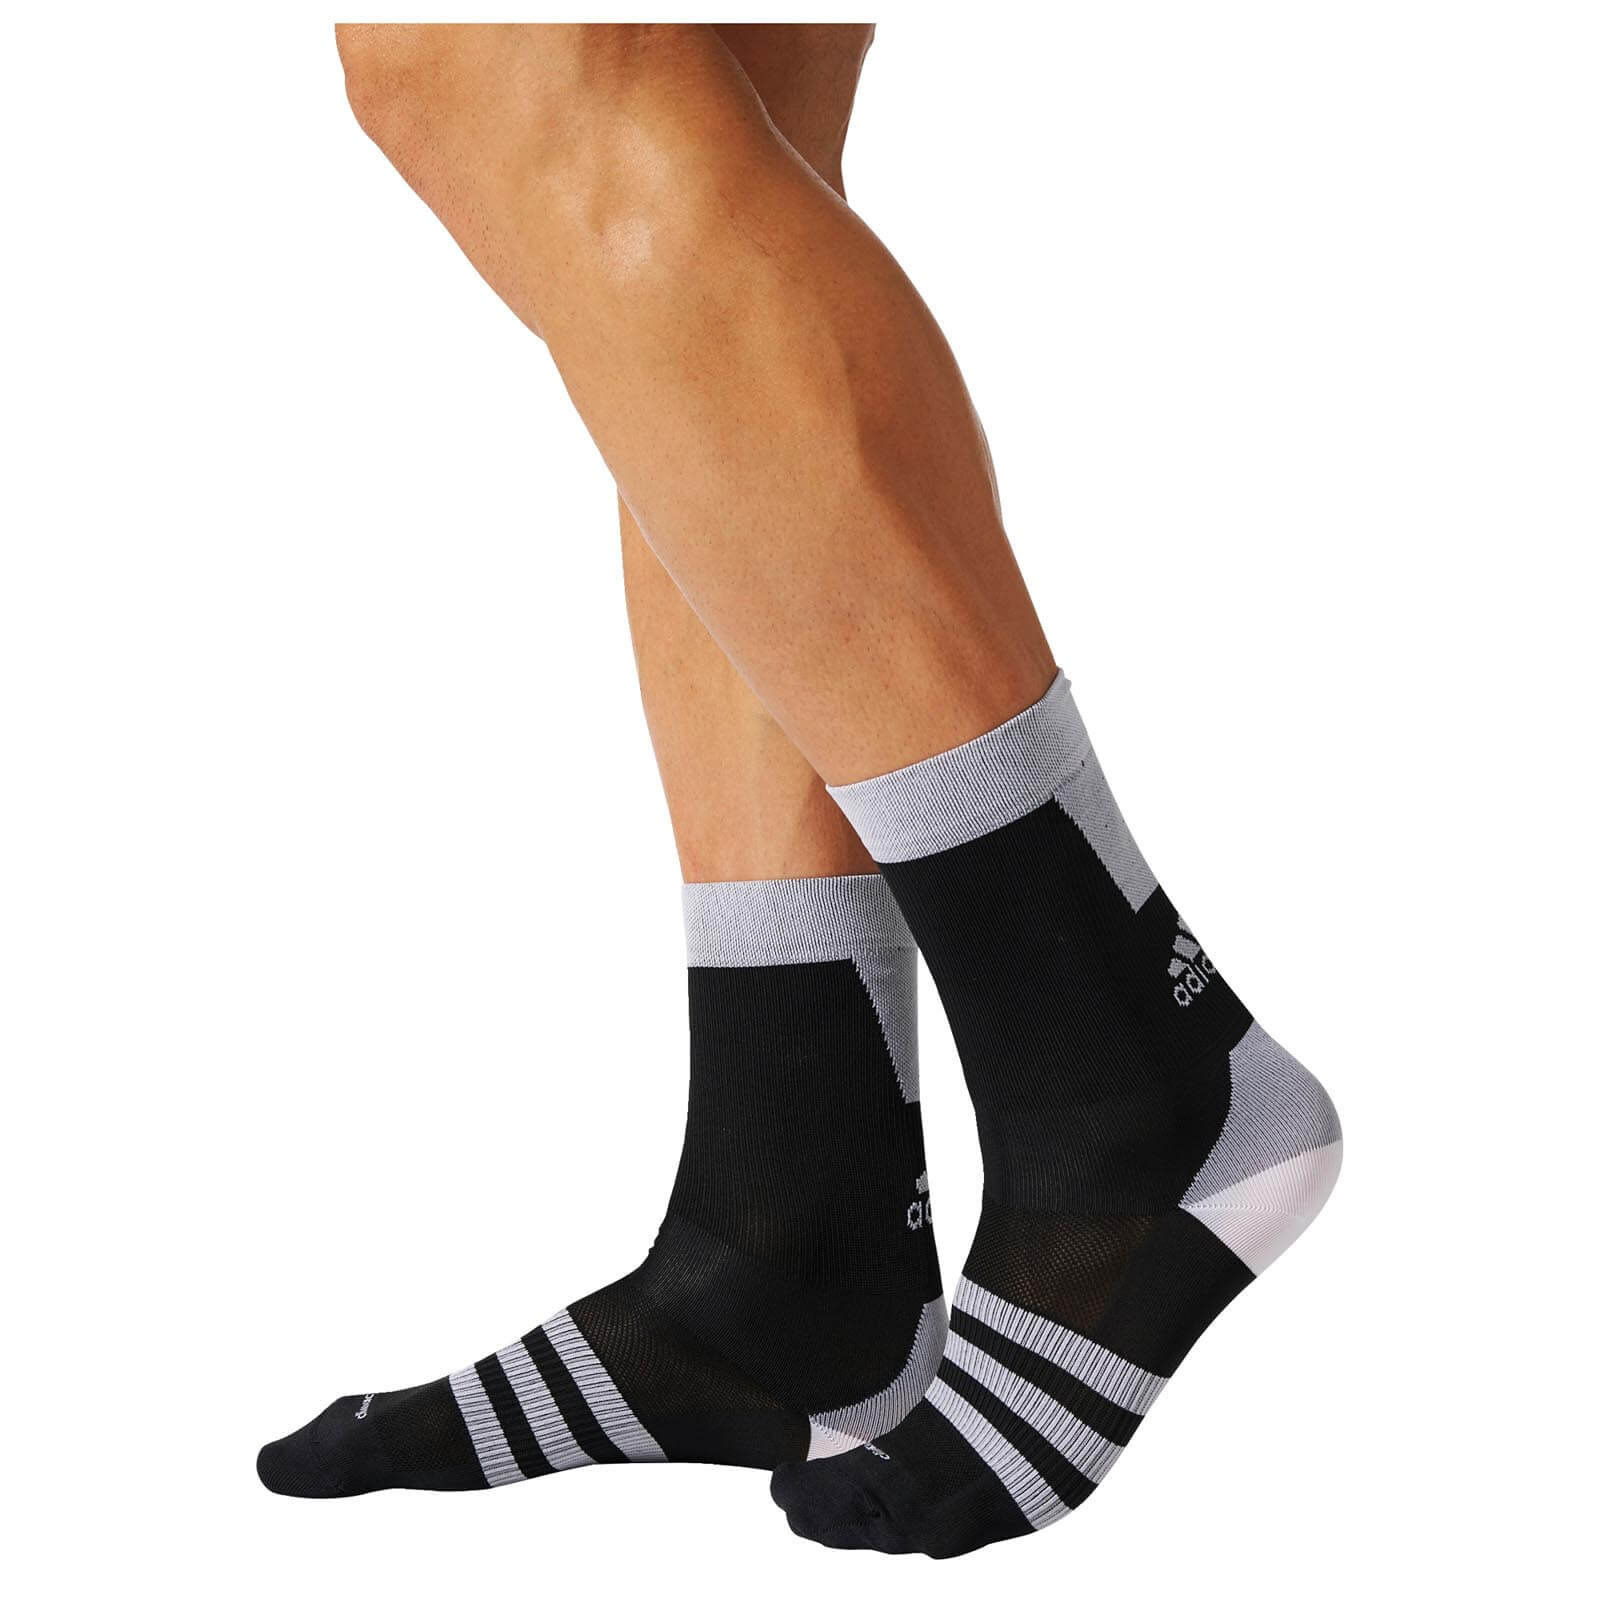 adidas Infinity 13 Cycling Socks - Black